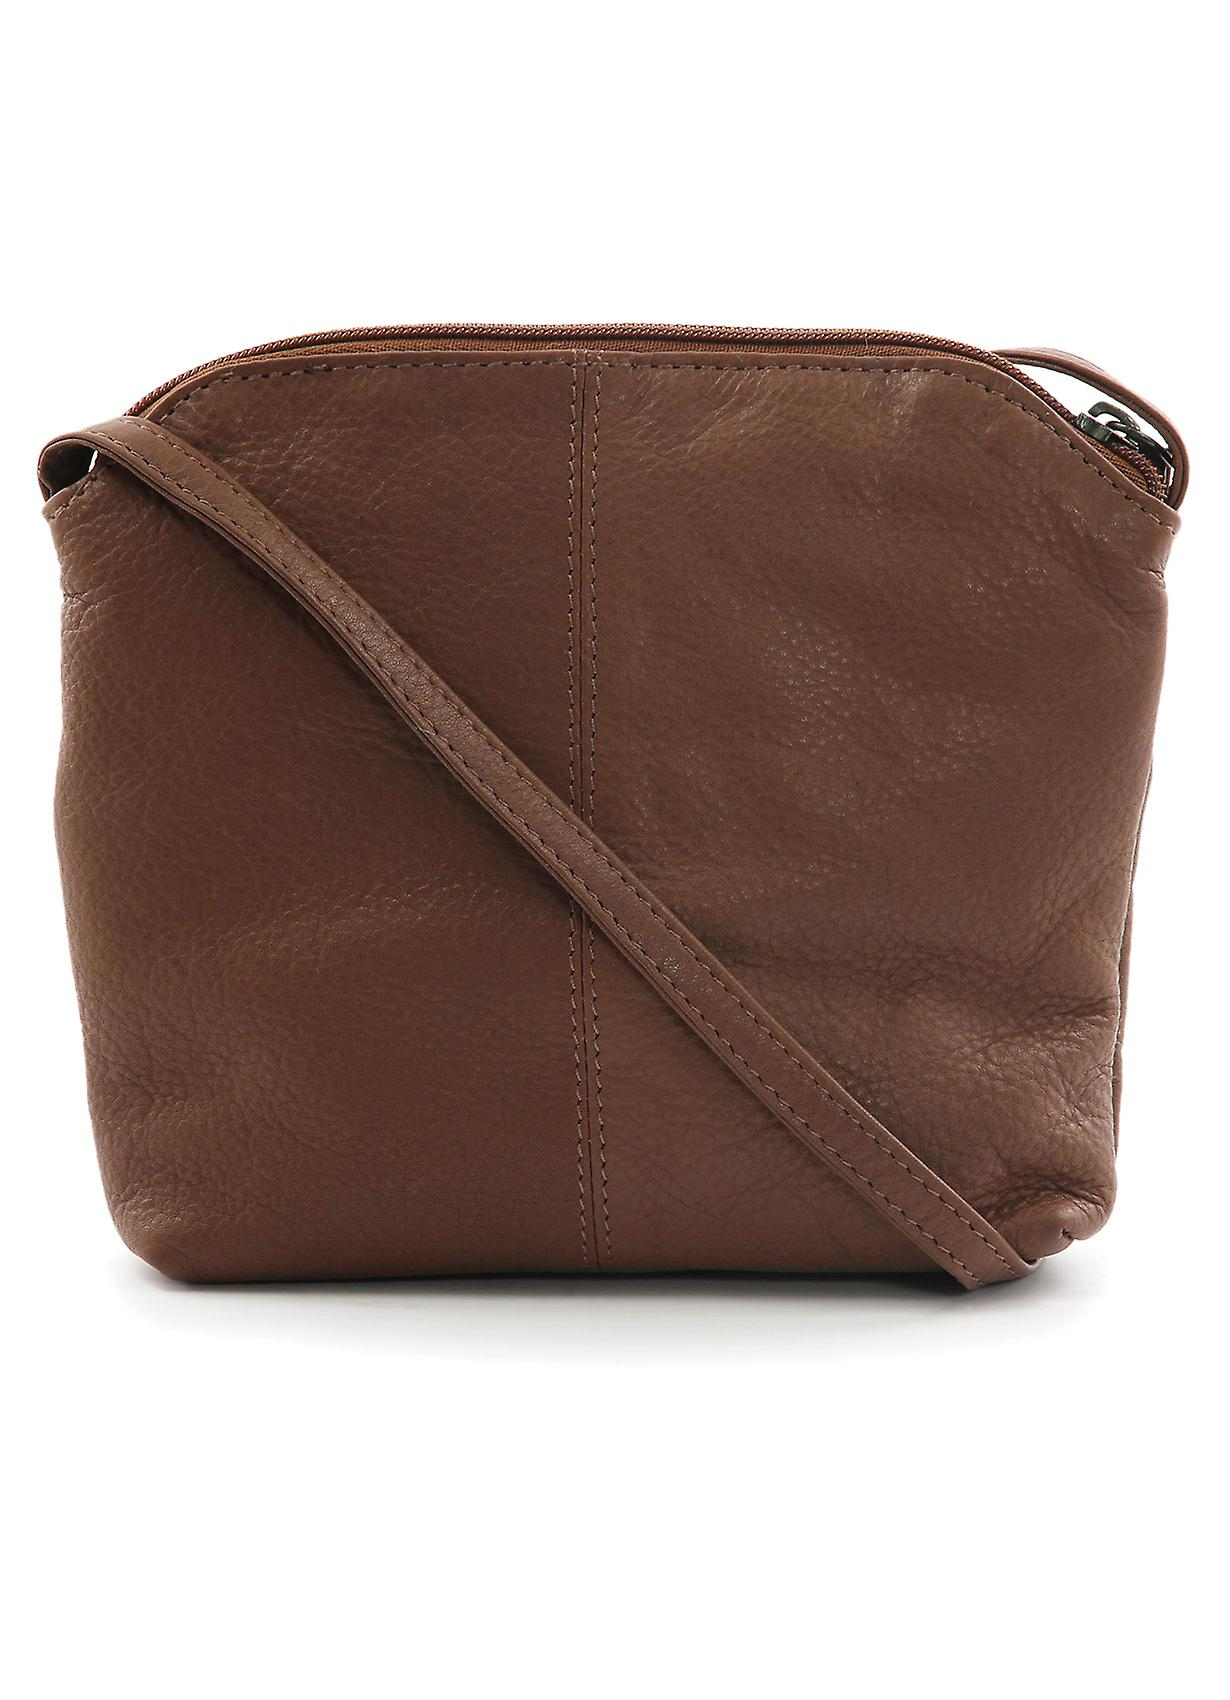 Tilly Roma Small Leather Cross Body Bag in Cognac